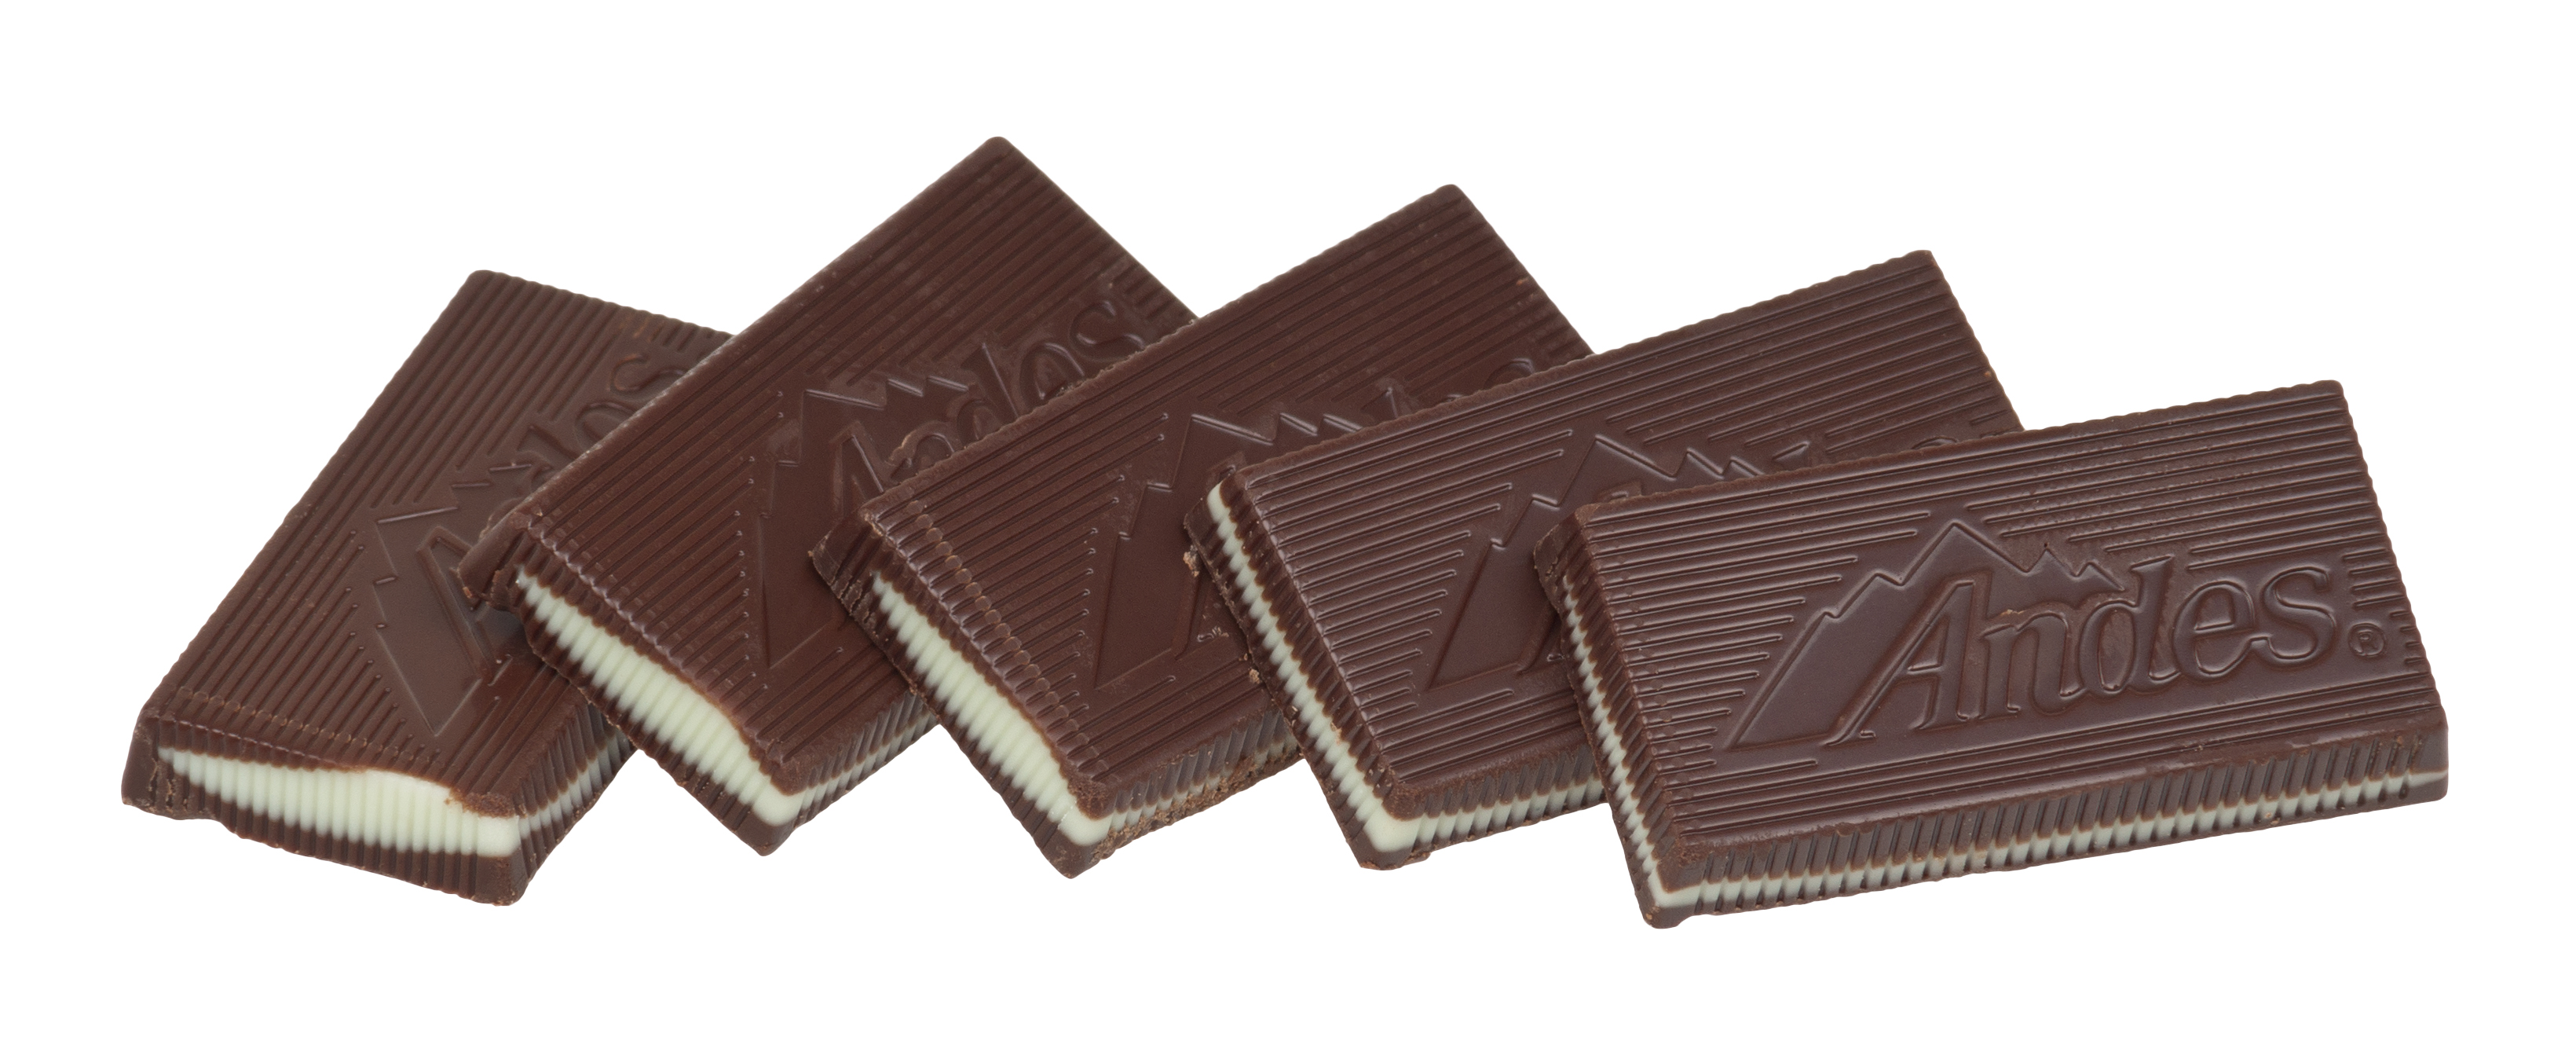 Andes Chocolate Mints - Wikipedia